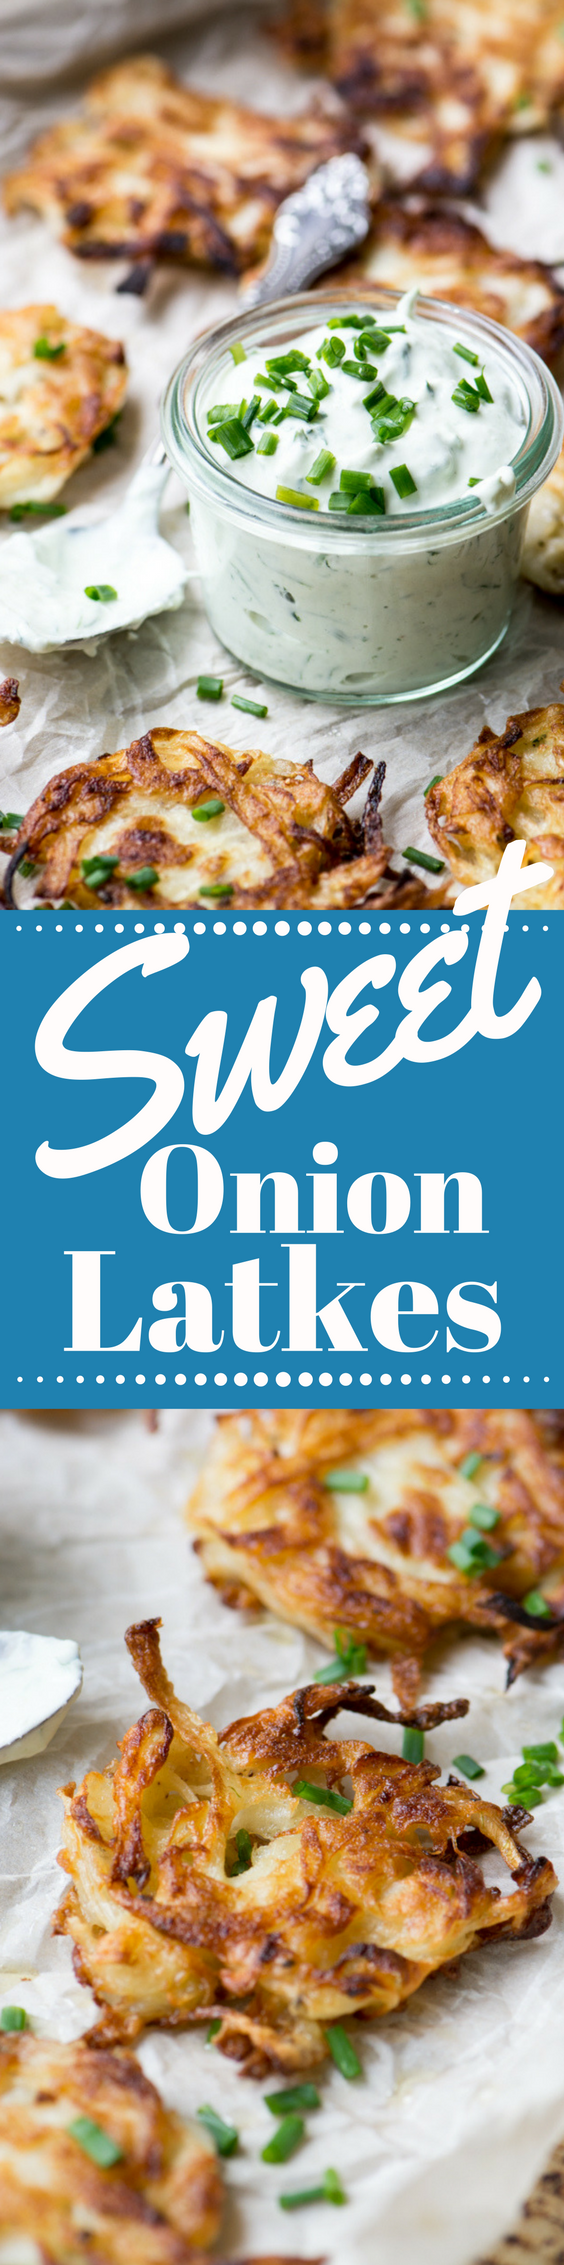 Sweet Onion Latkes with Chive Sour Cream | The View from Great Island